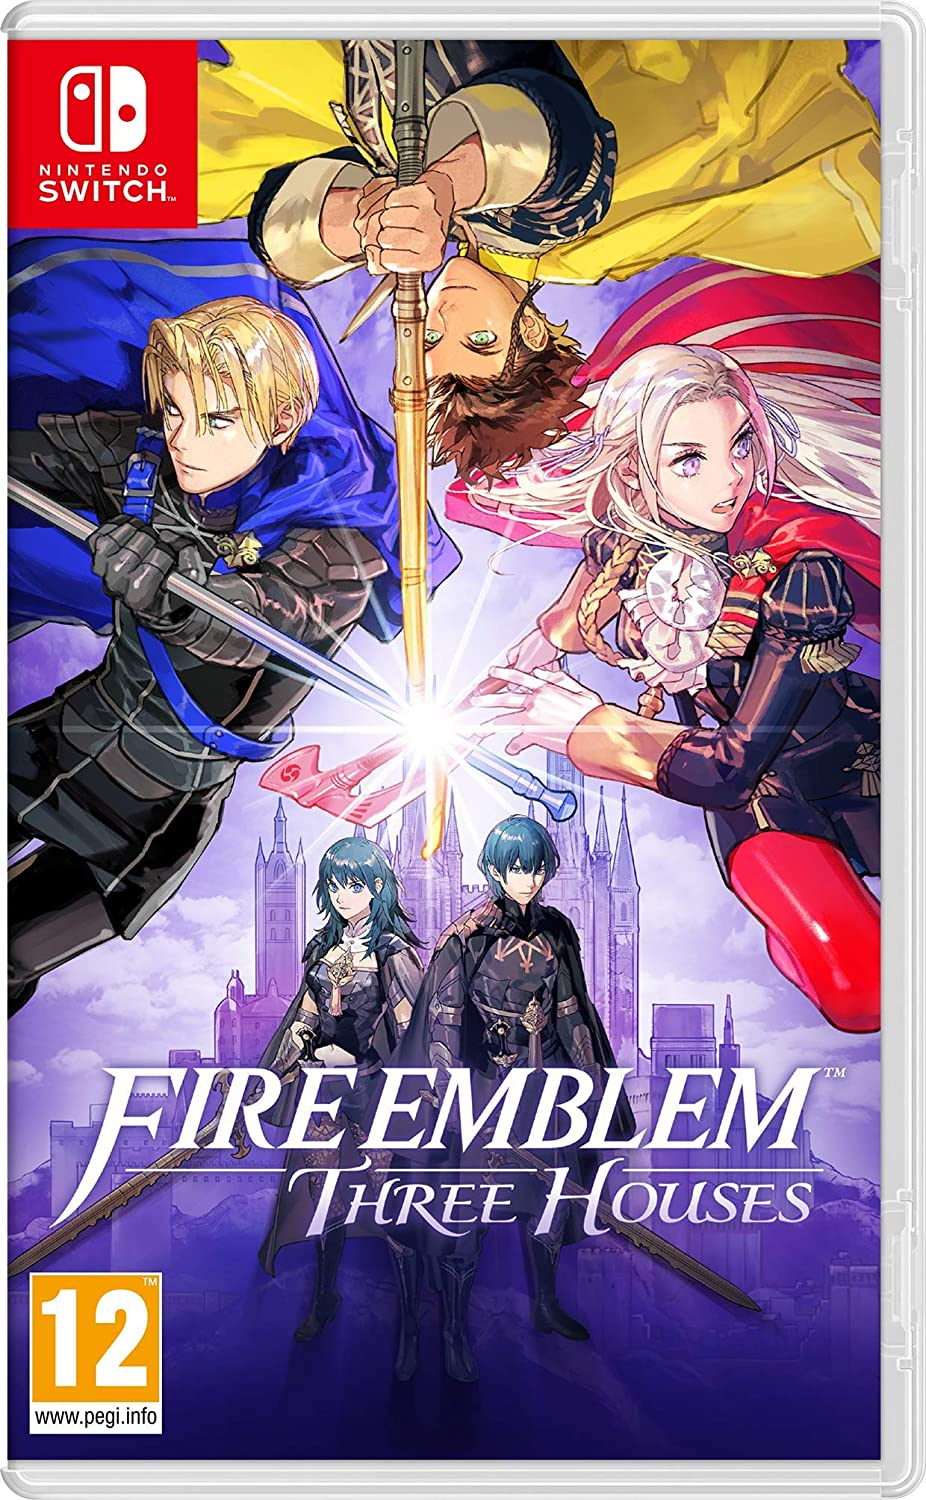 Fire Emblem: Three Houses: Amazon.es: Videojuegos